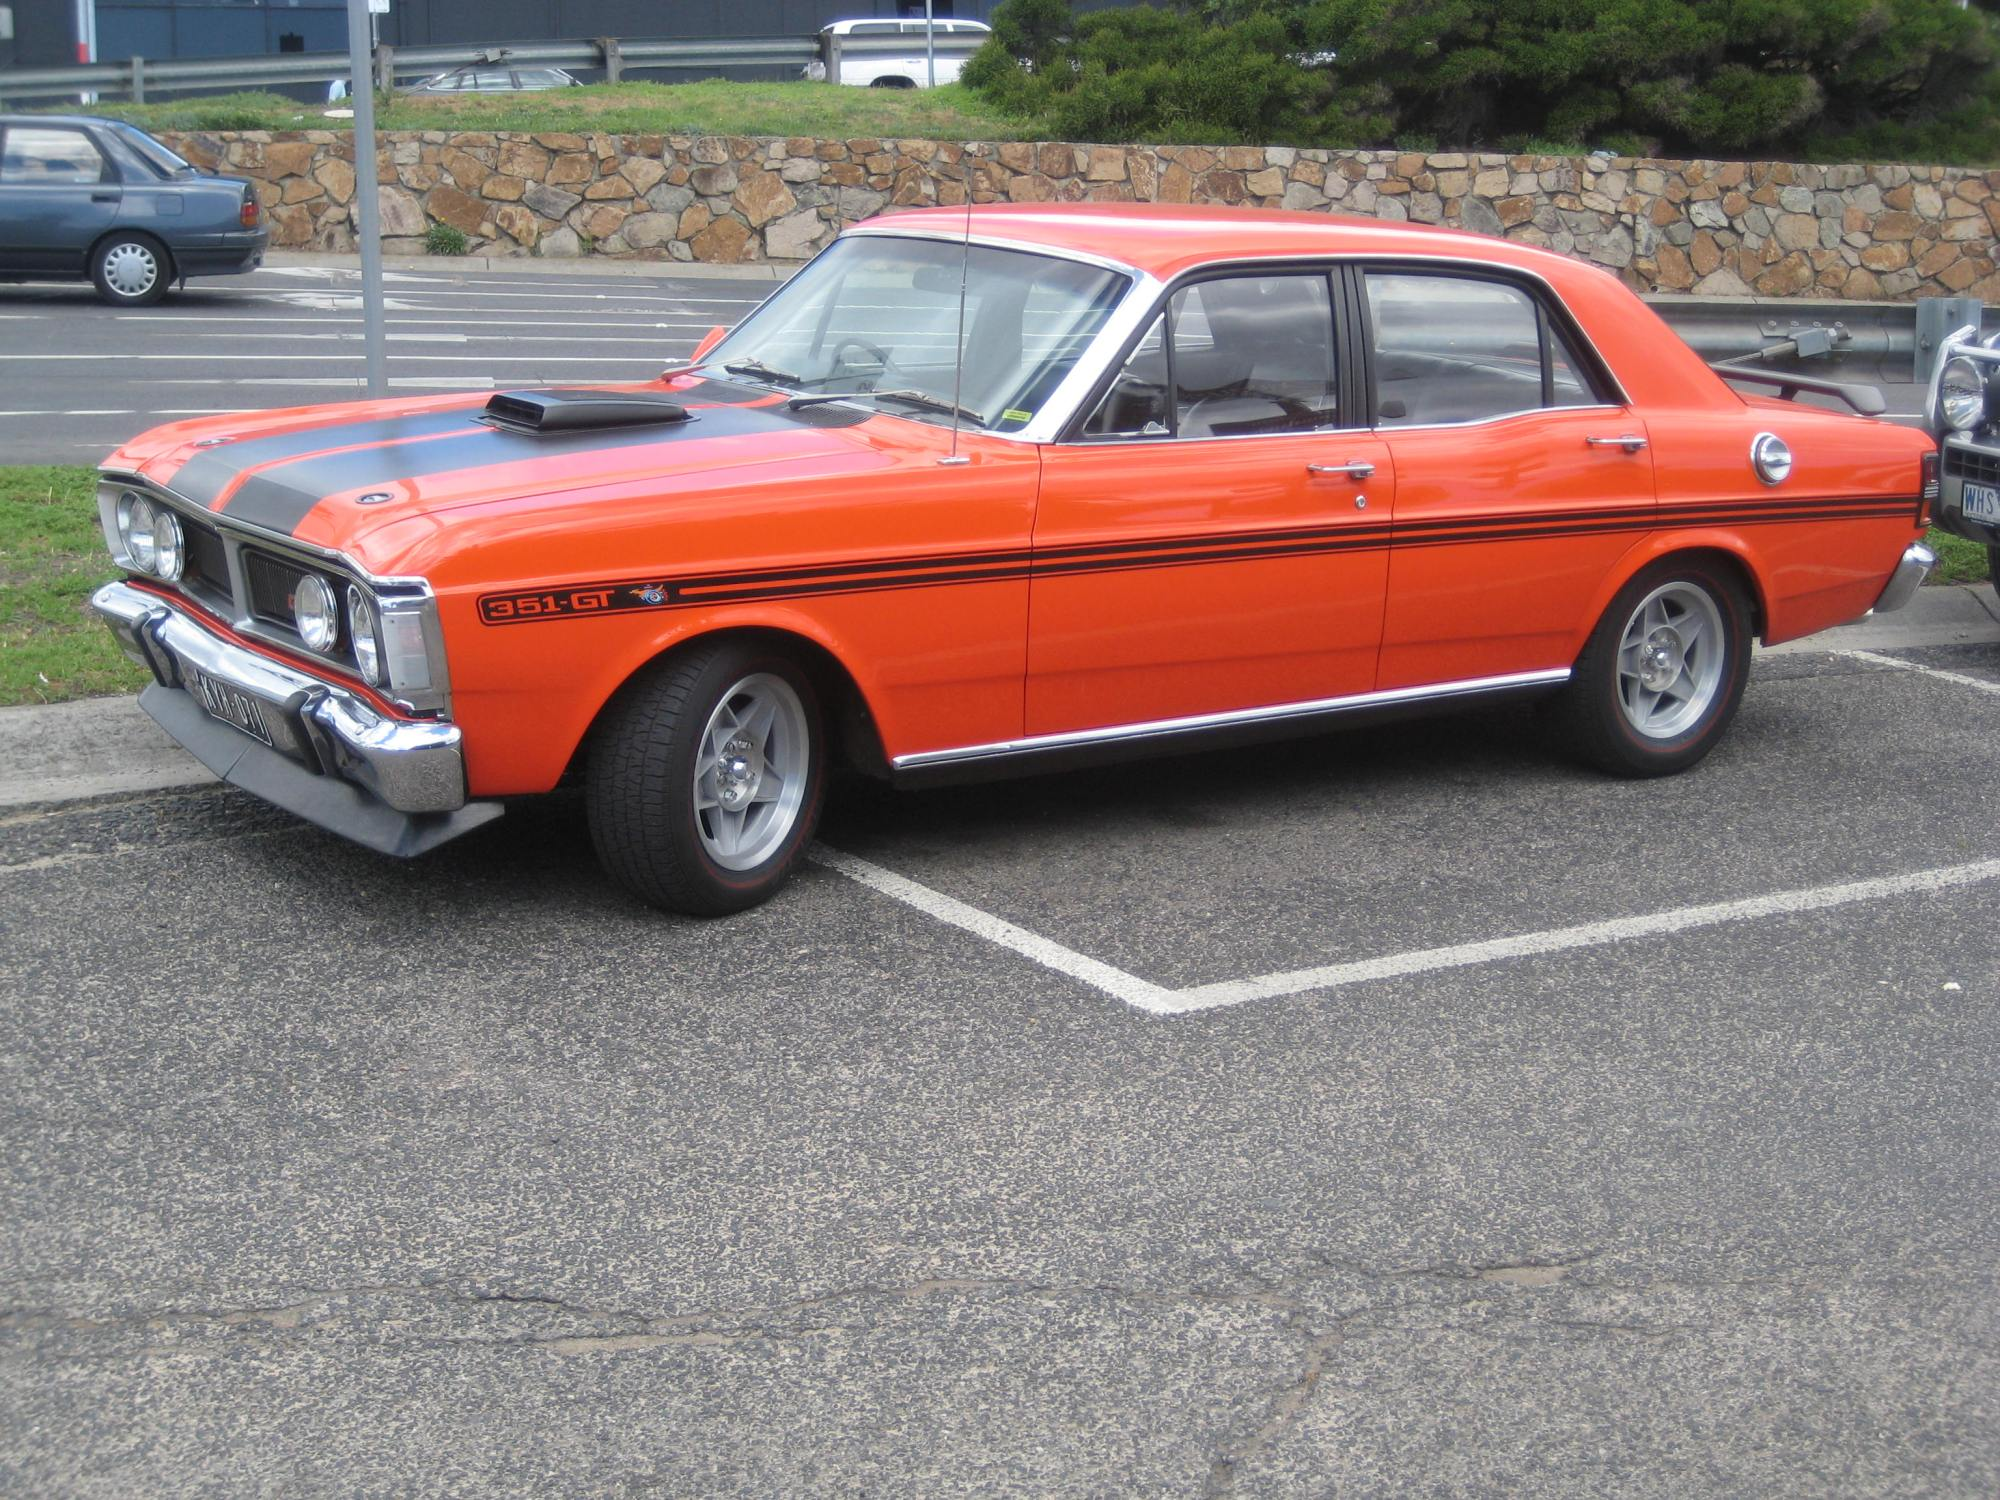 hight resolution of file ford falcon 351 gt jpg